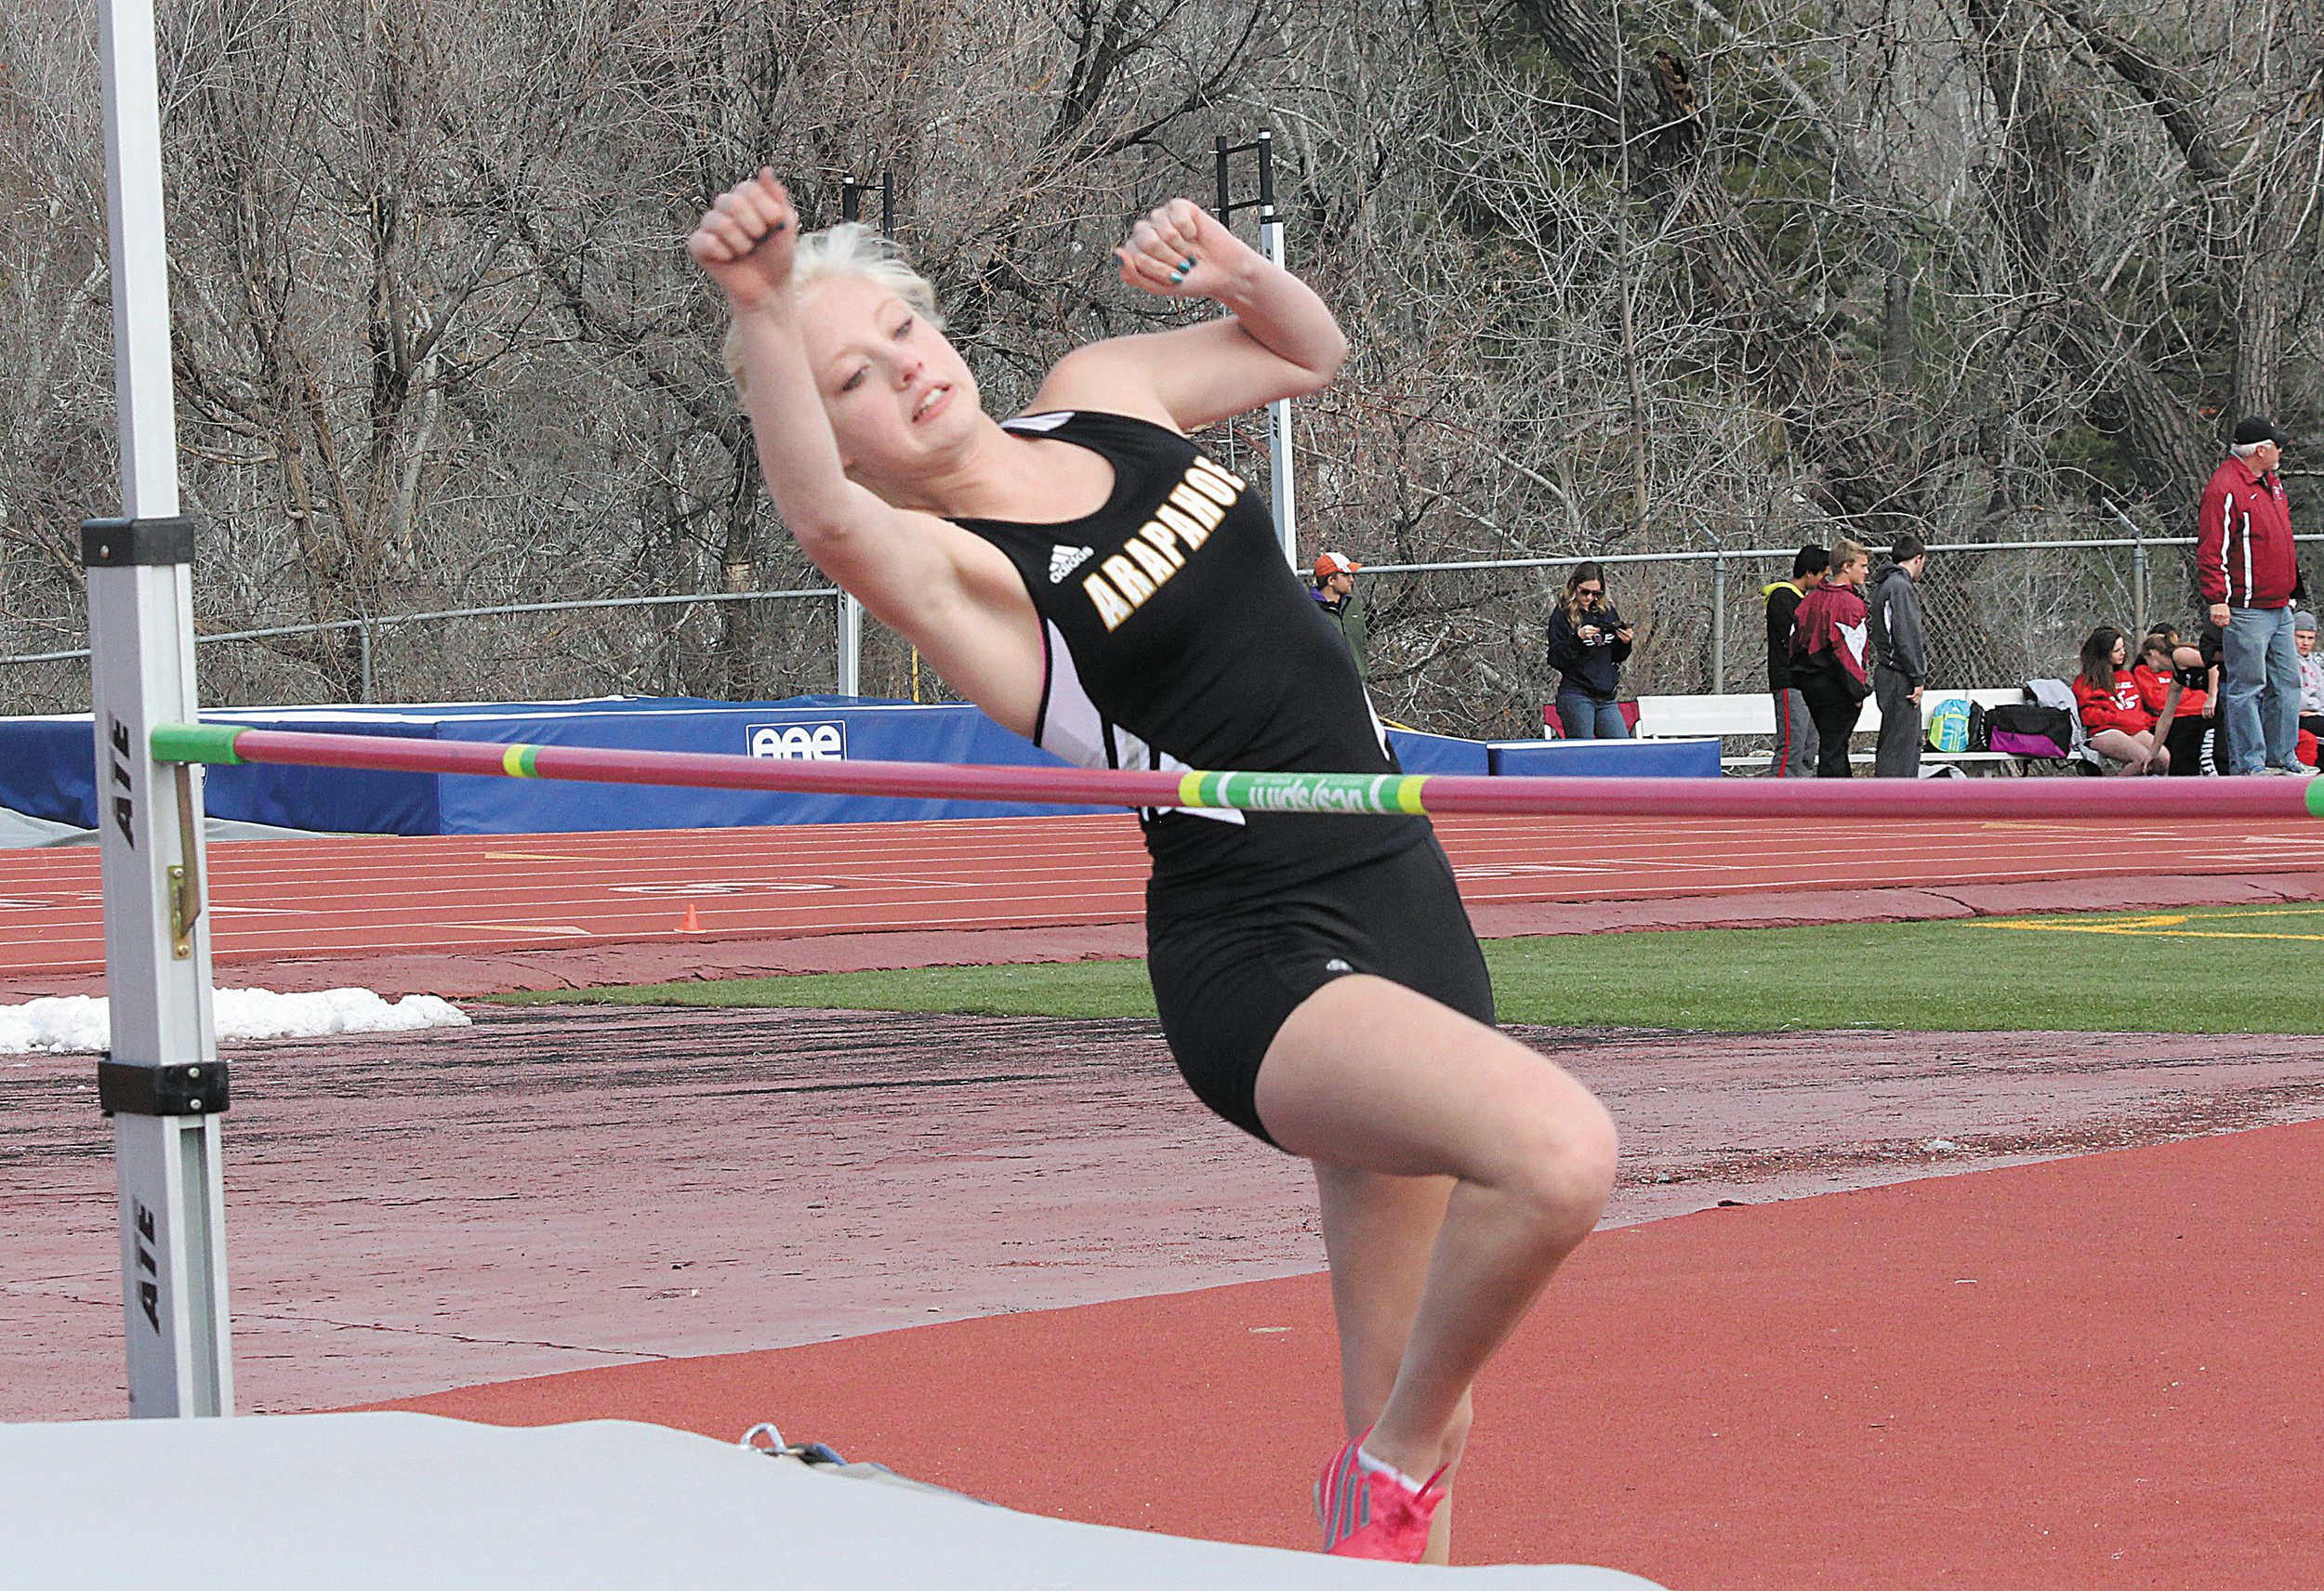 Arapahoe senior Addyson Harland goes over the bar during the high jump competition at the April 4 Littleton City Meet. The Warriors won both the boys and the girls team titles.